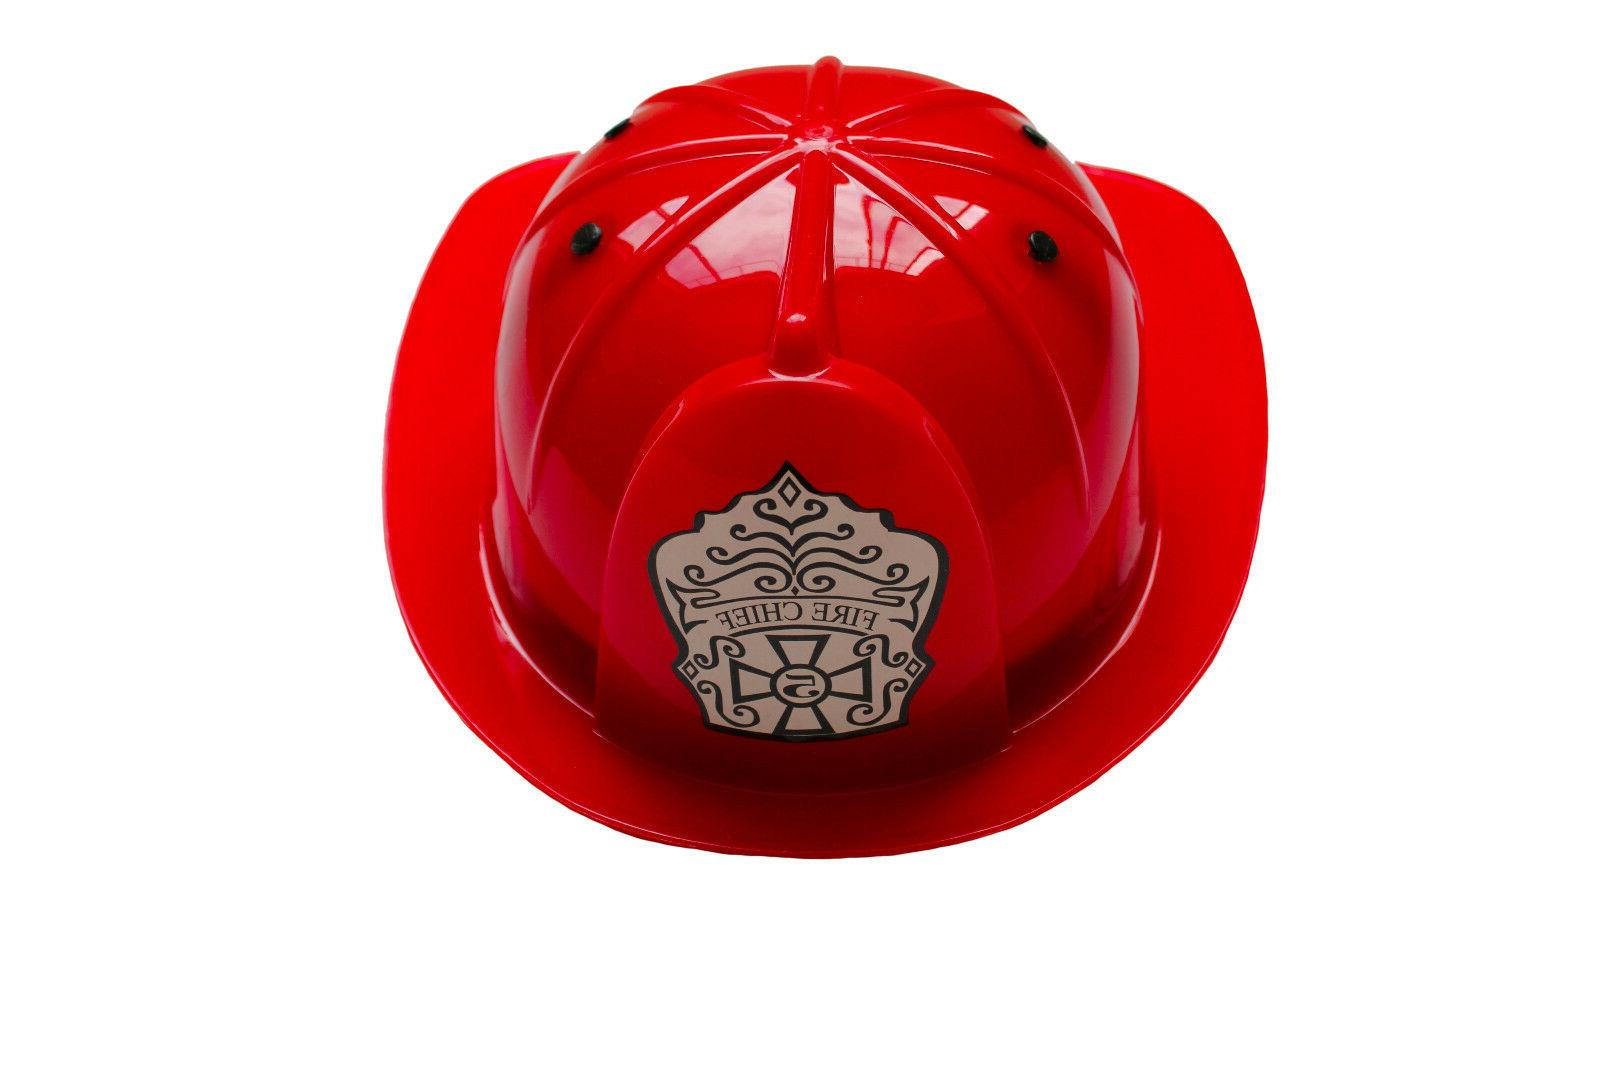 Firefighter up badge Fire man Size S 3 4 5 6